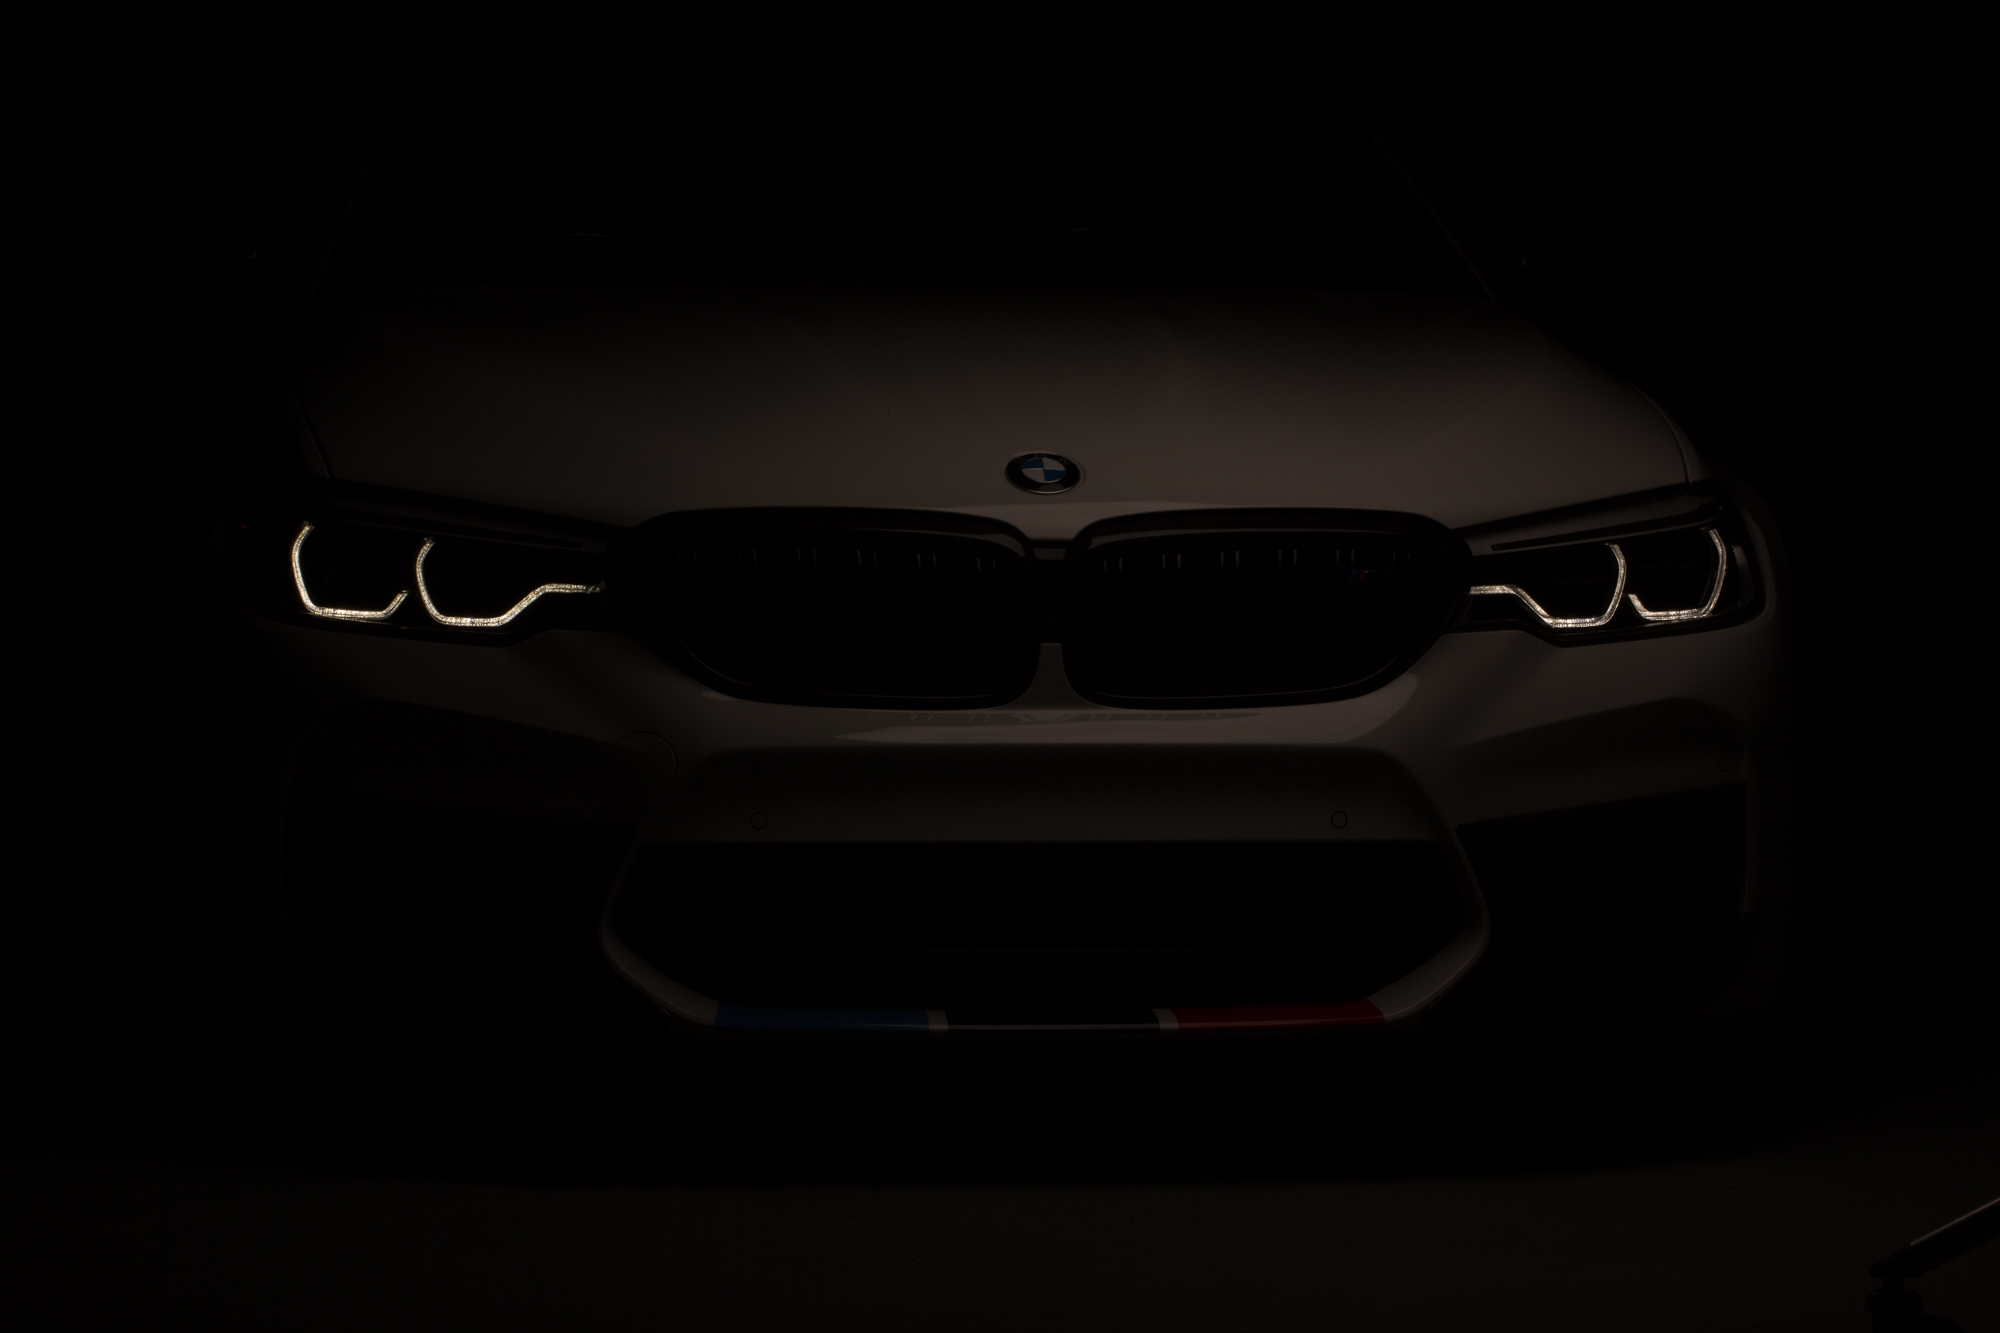 BMW M5 M Performance Parts Teaser